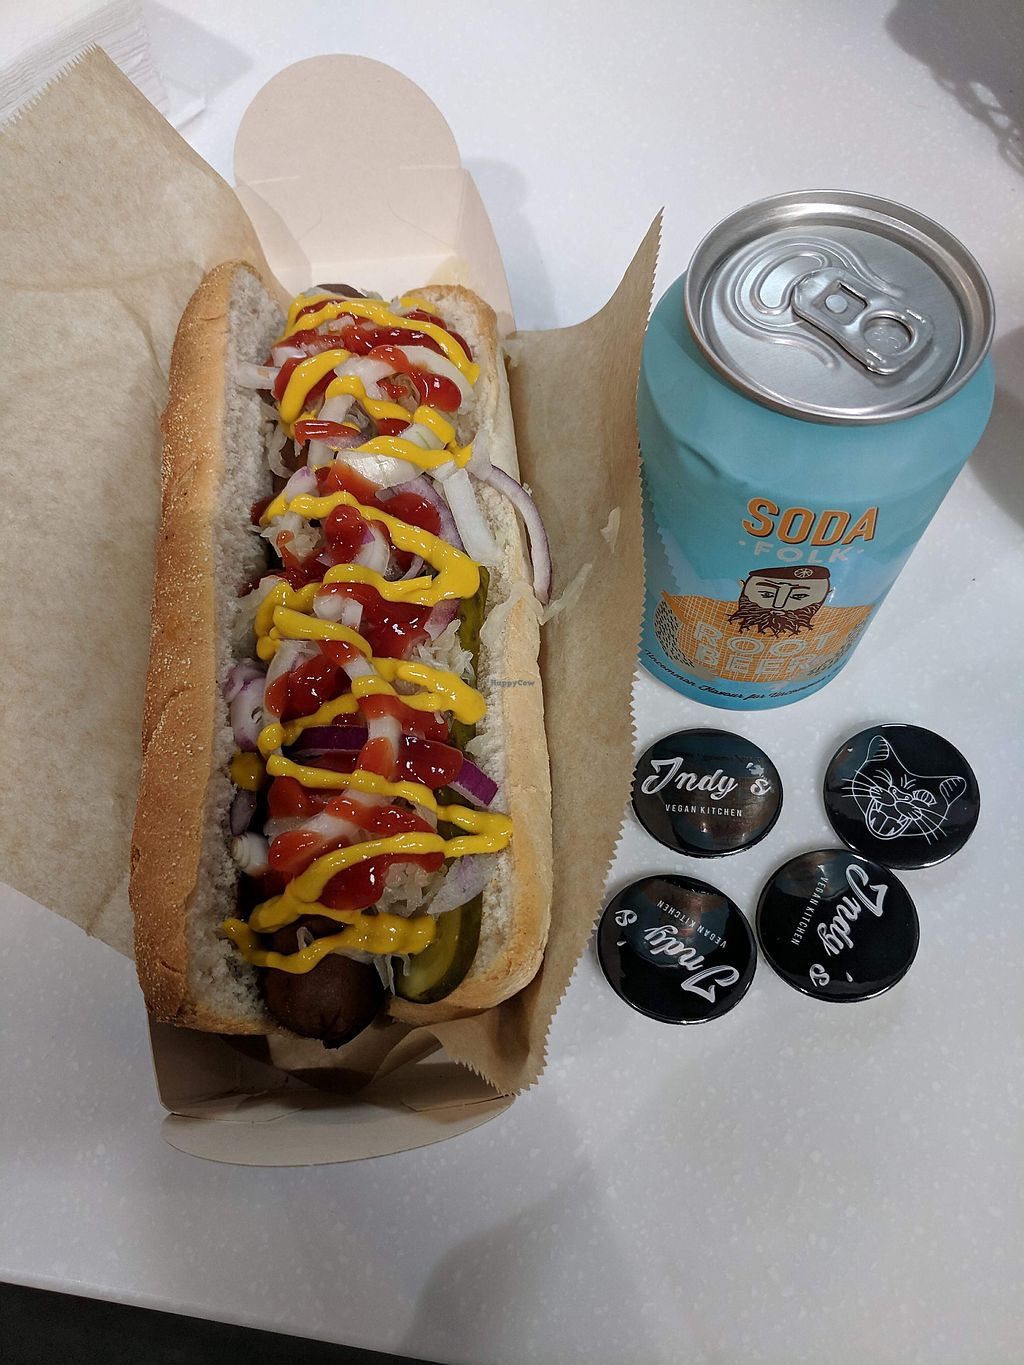 "Photo of Indy's Vegan Kitchen  by <a href=""/members/profile/nswain"">nswain</a> <br/>New York Hot Dog <br/> March 12, 2018  - <a href='/contact/abuse/image/114174/369944'>Report</a>"